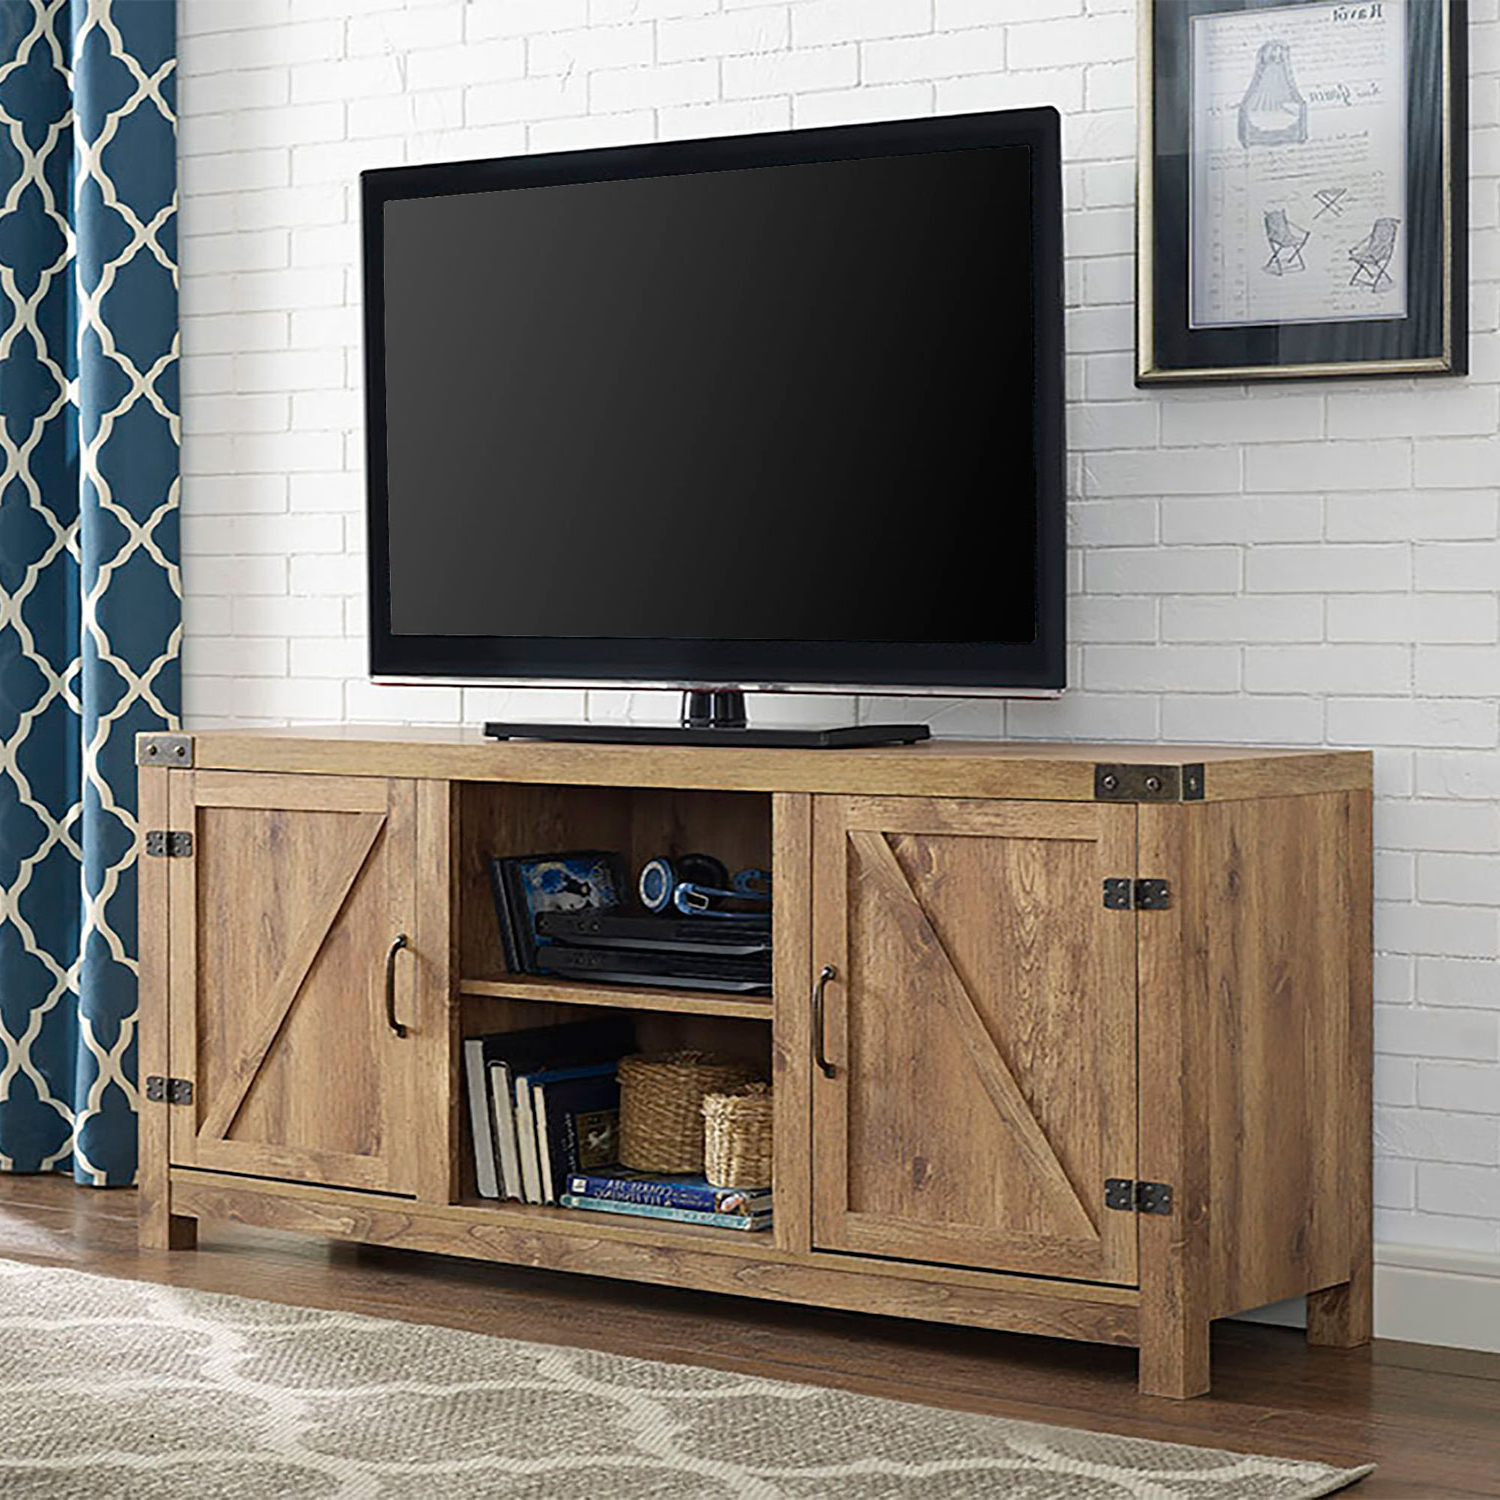 Cherry Tv Stands For Flat Screens Solid Stand Amish Made With Most Recent Cabinet Tv Stands (View 5 of 20)